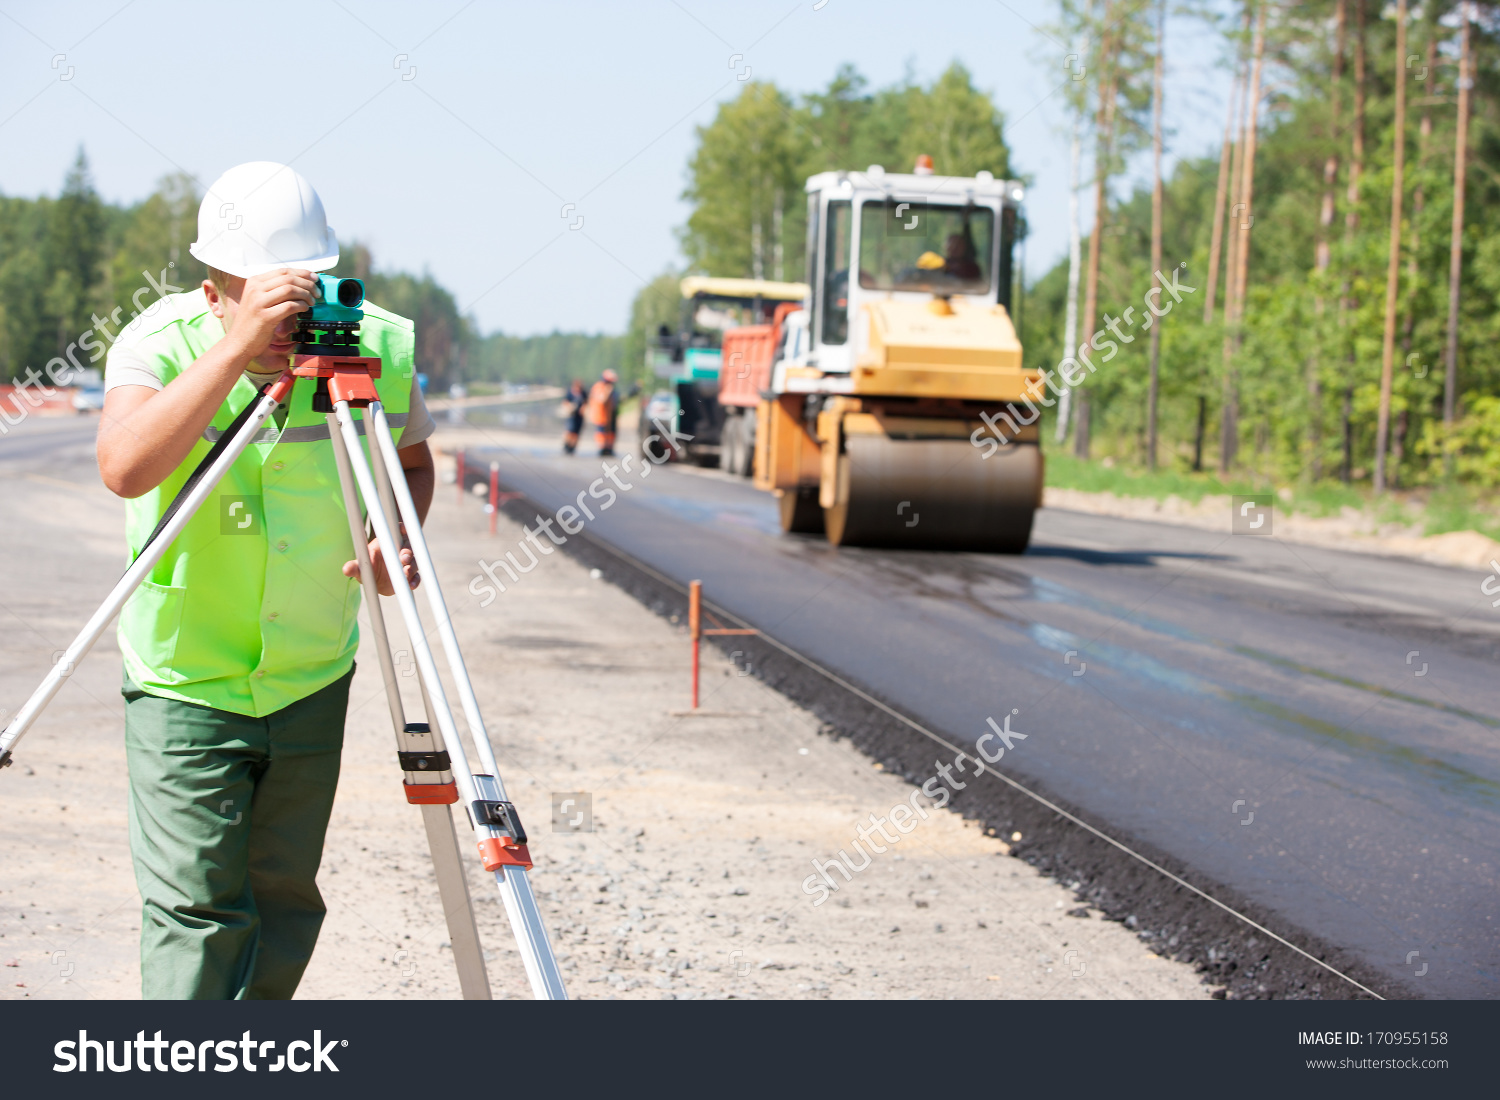 stock-photo-surveyor-engineer-worker-making-measuring-with-theodolite-instrument-equipment-during-construction-170955158